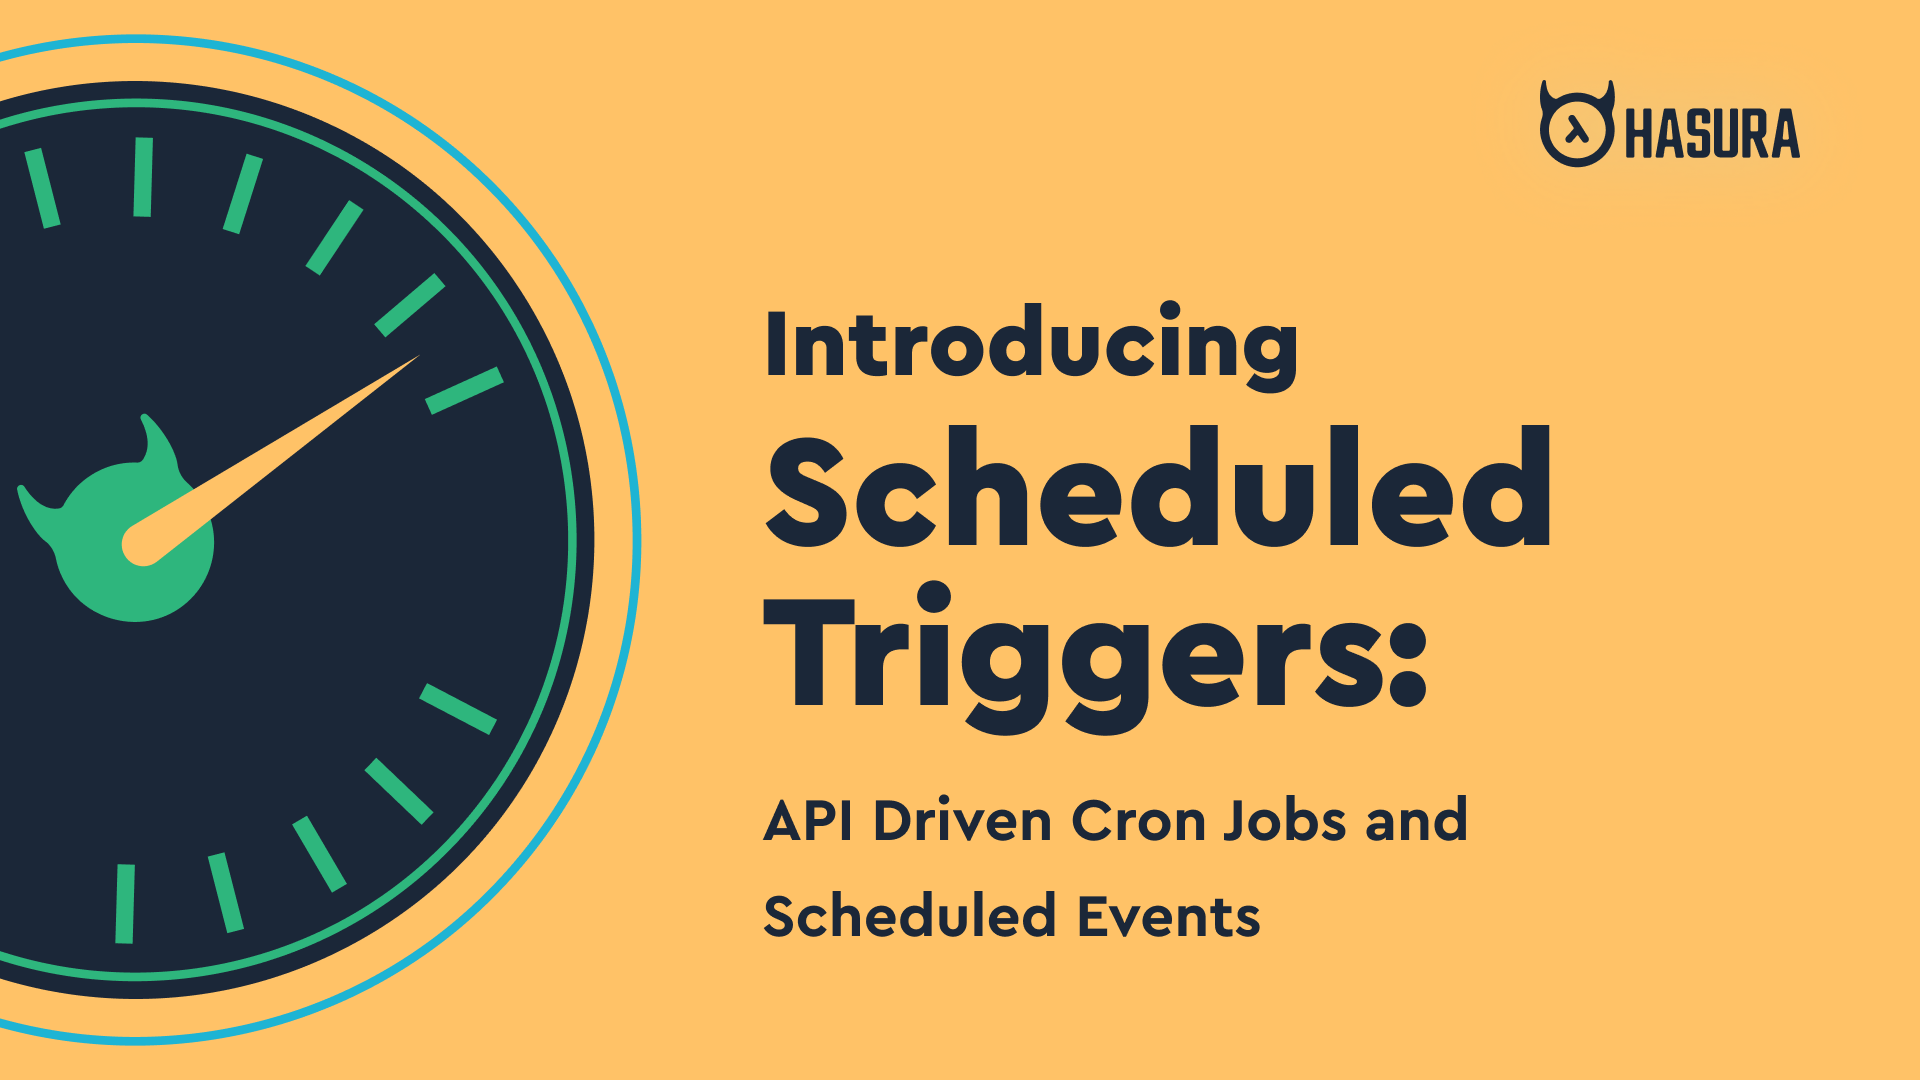 Introducing Scheduled Triggers: API Driven Cron Jobs and Scheduled Events